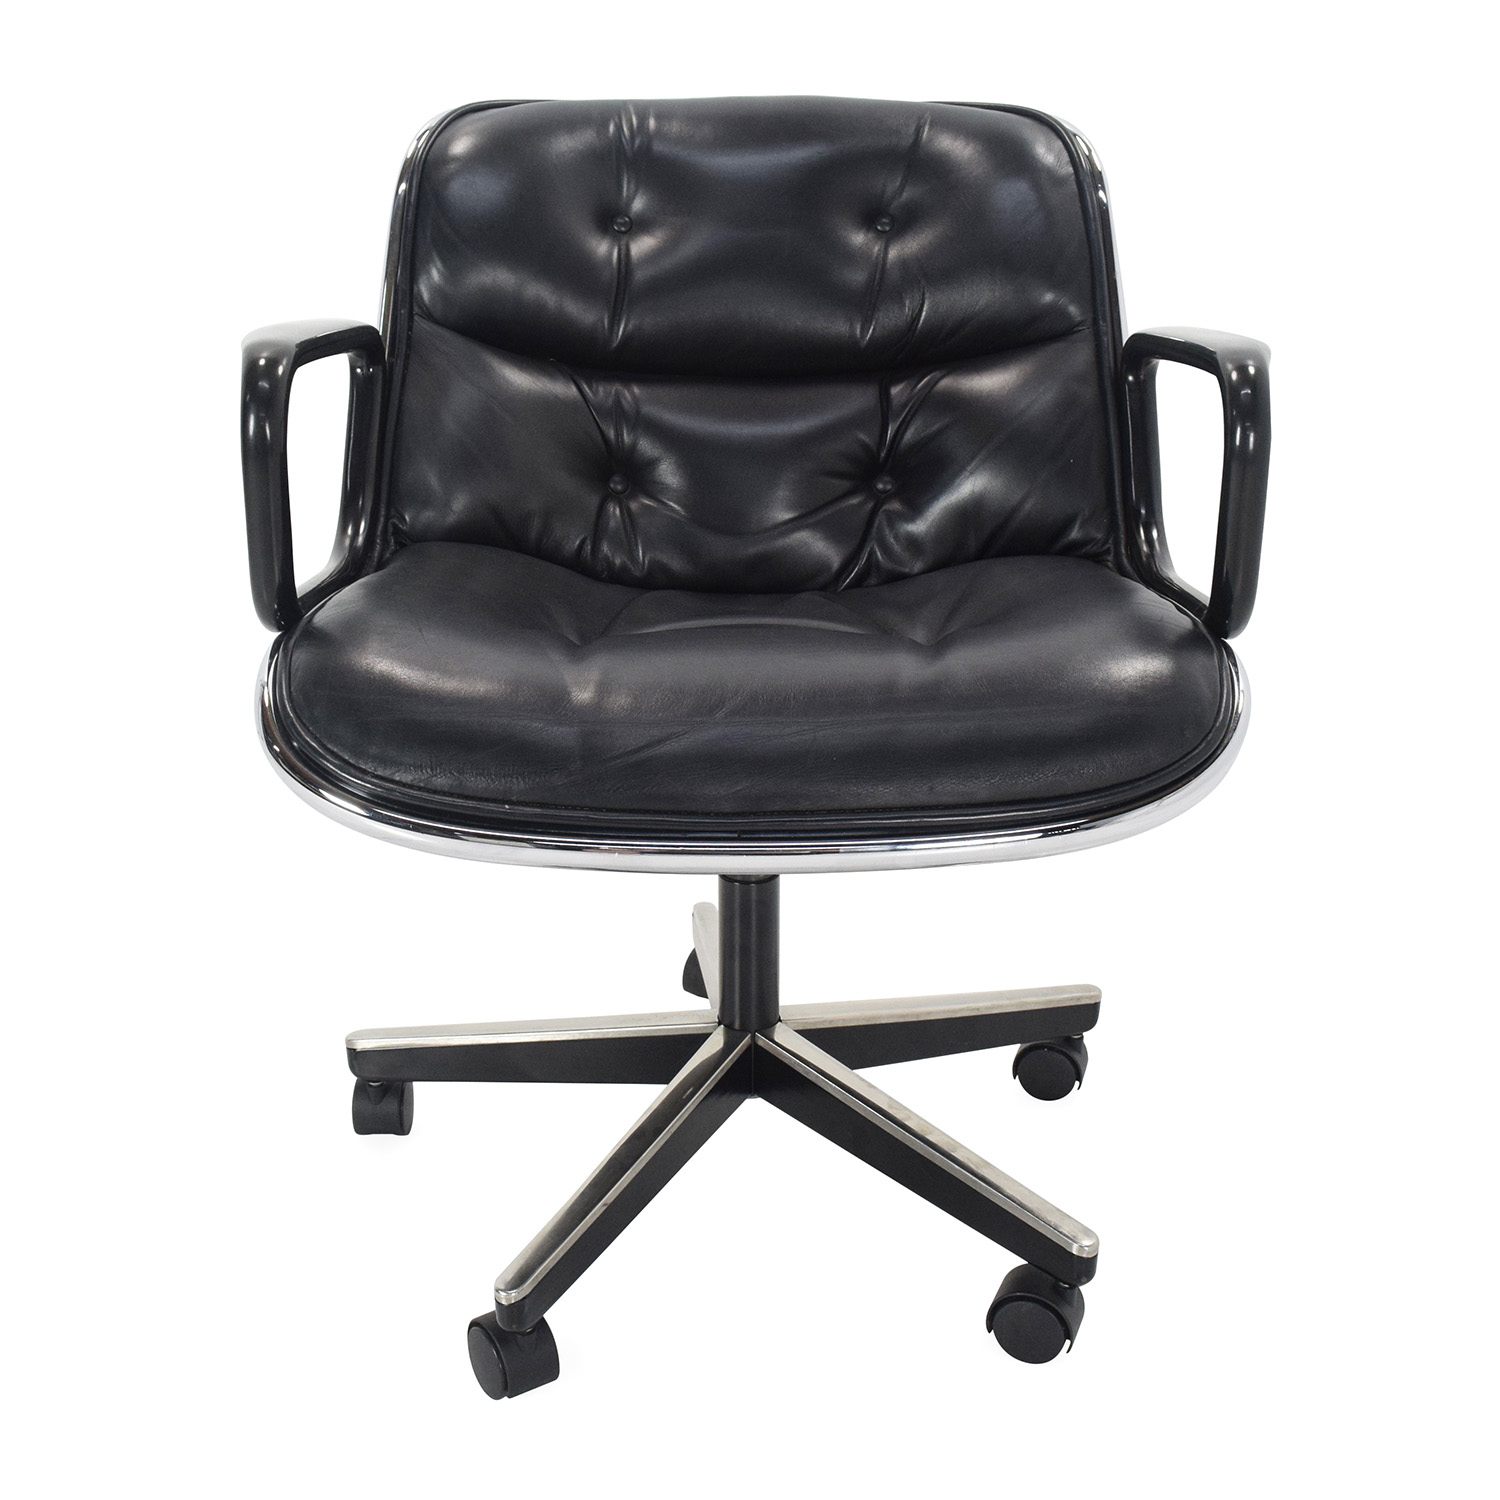 Deluxe Boardroom Chair price